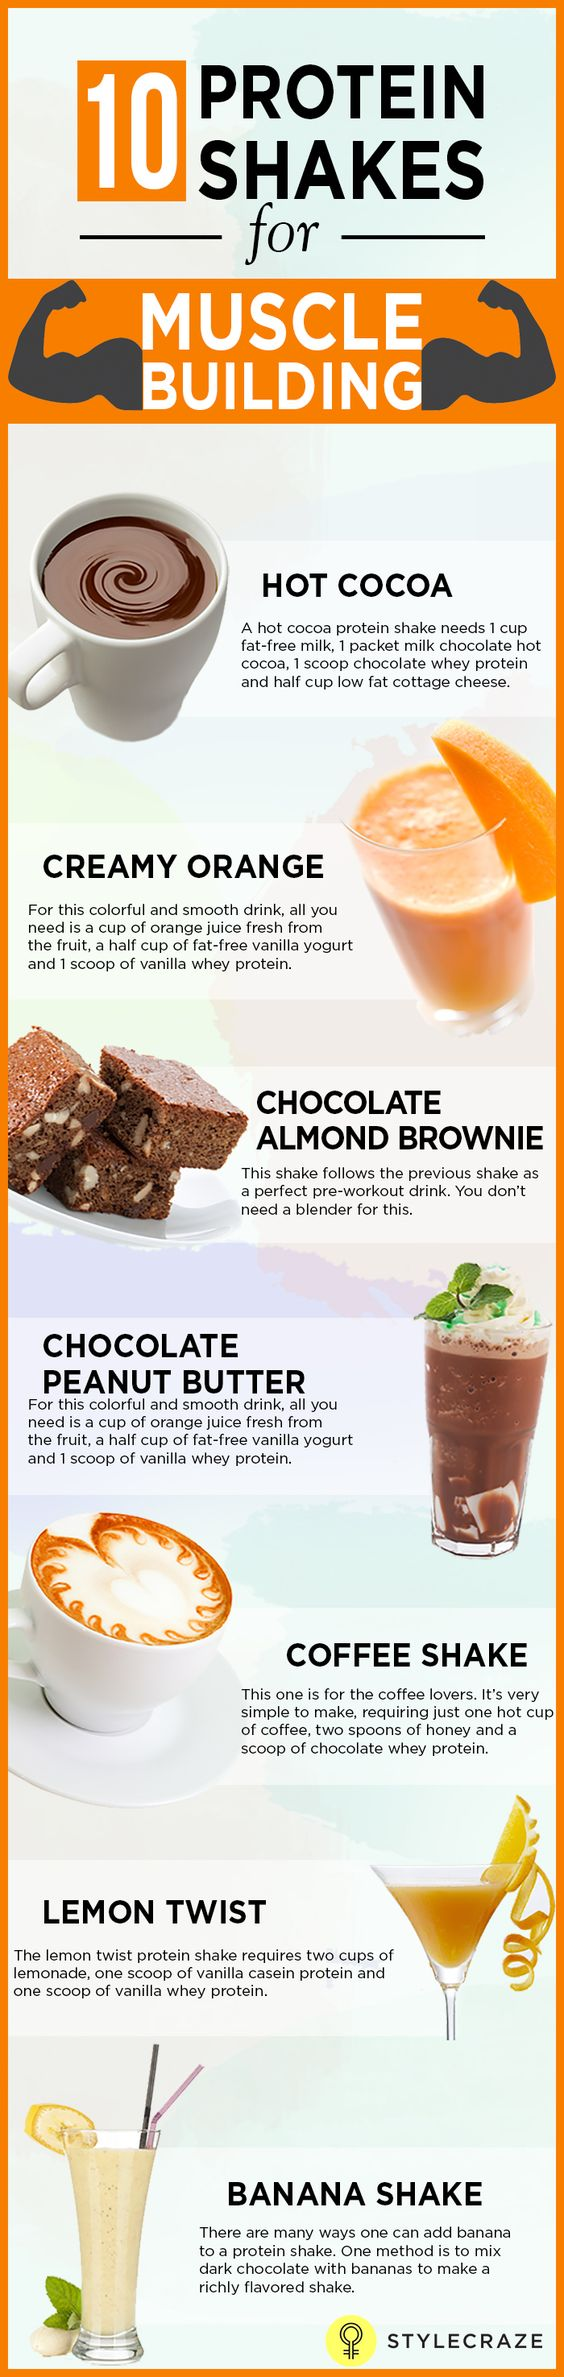 Protein shakes for muscle building